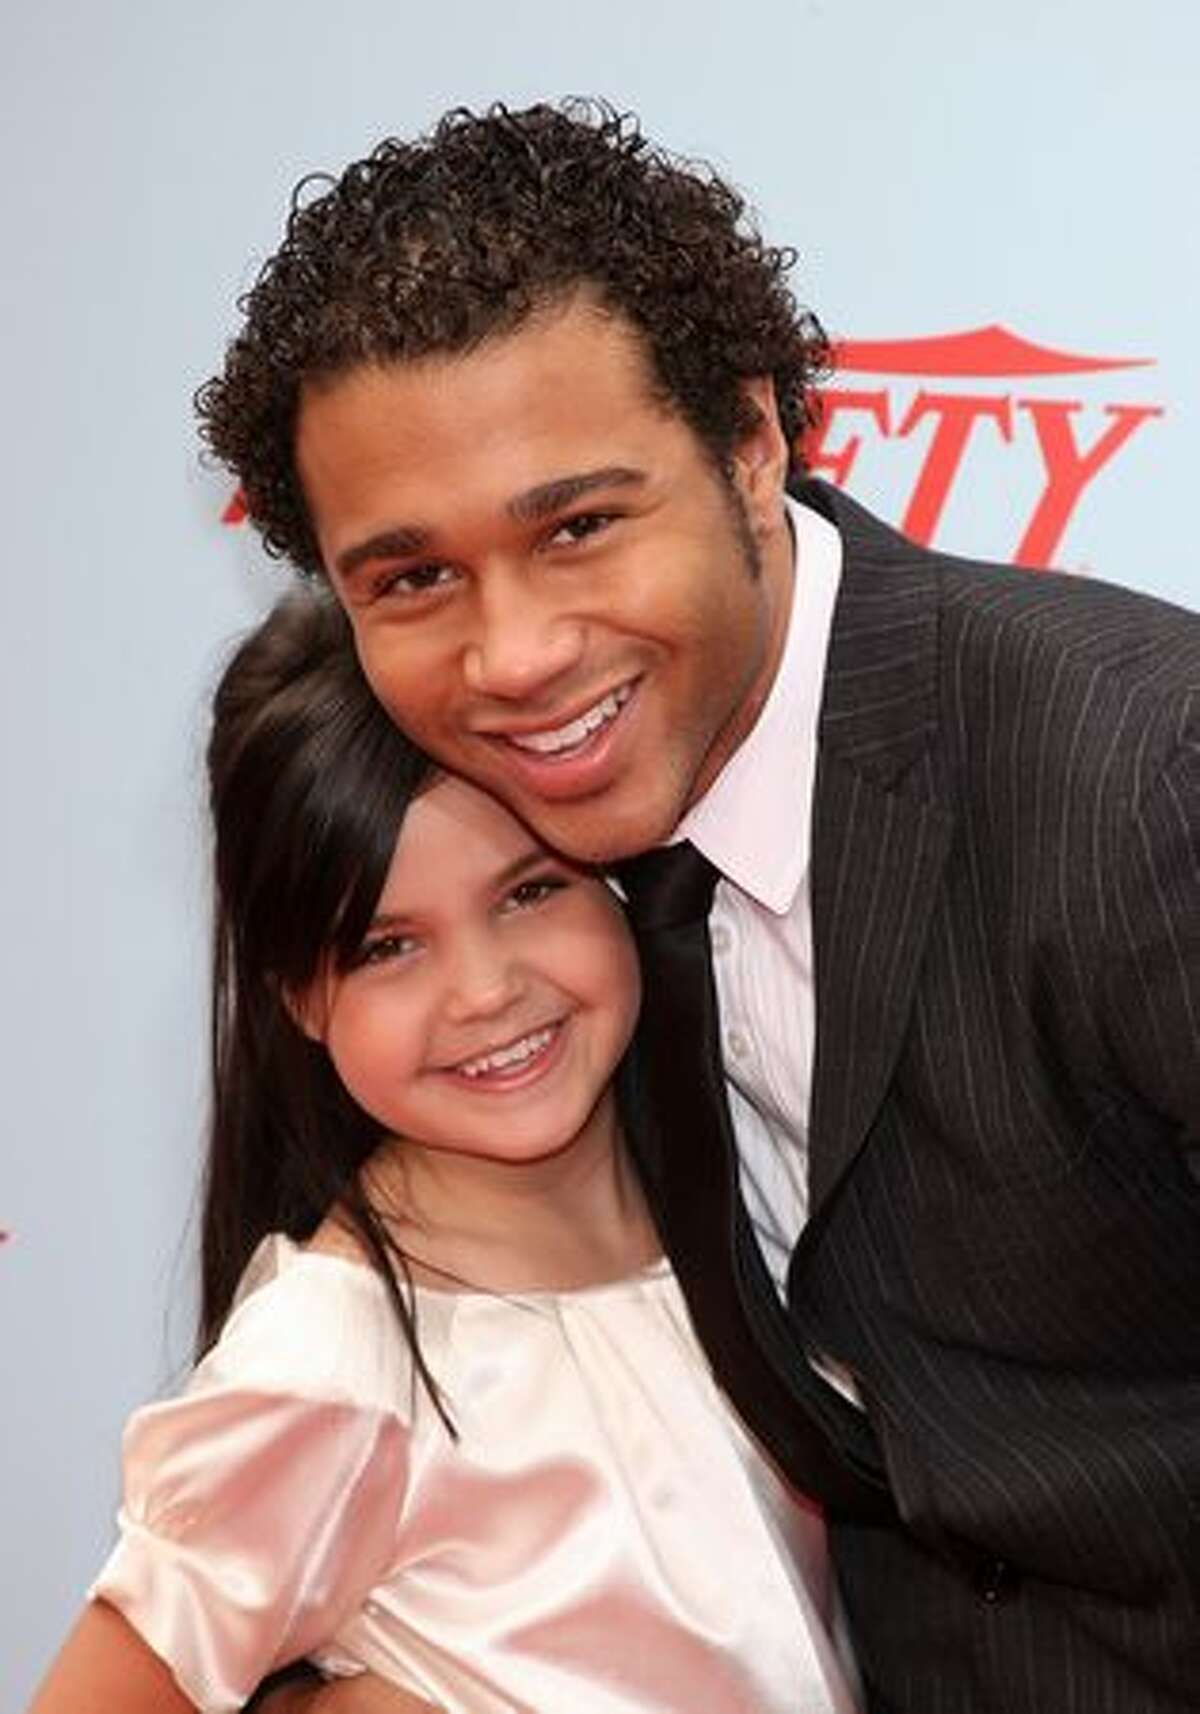 Actors Bailee Madison and Corbin Bleu arrive at Variety's 3rd Annual Power of Youth Event at Paramount Studios, on December 5, 2009 in Los Angeles, California.